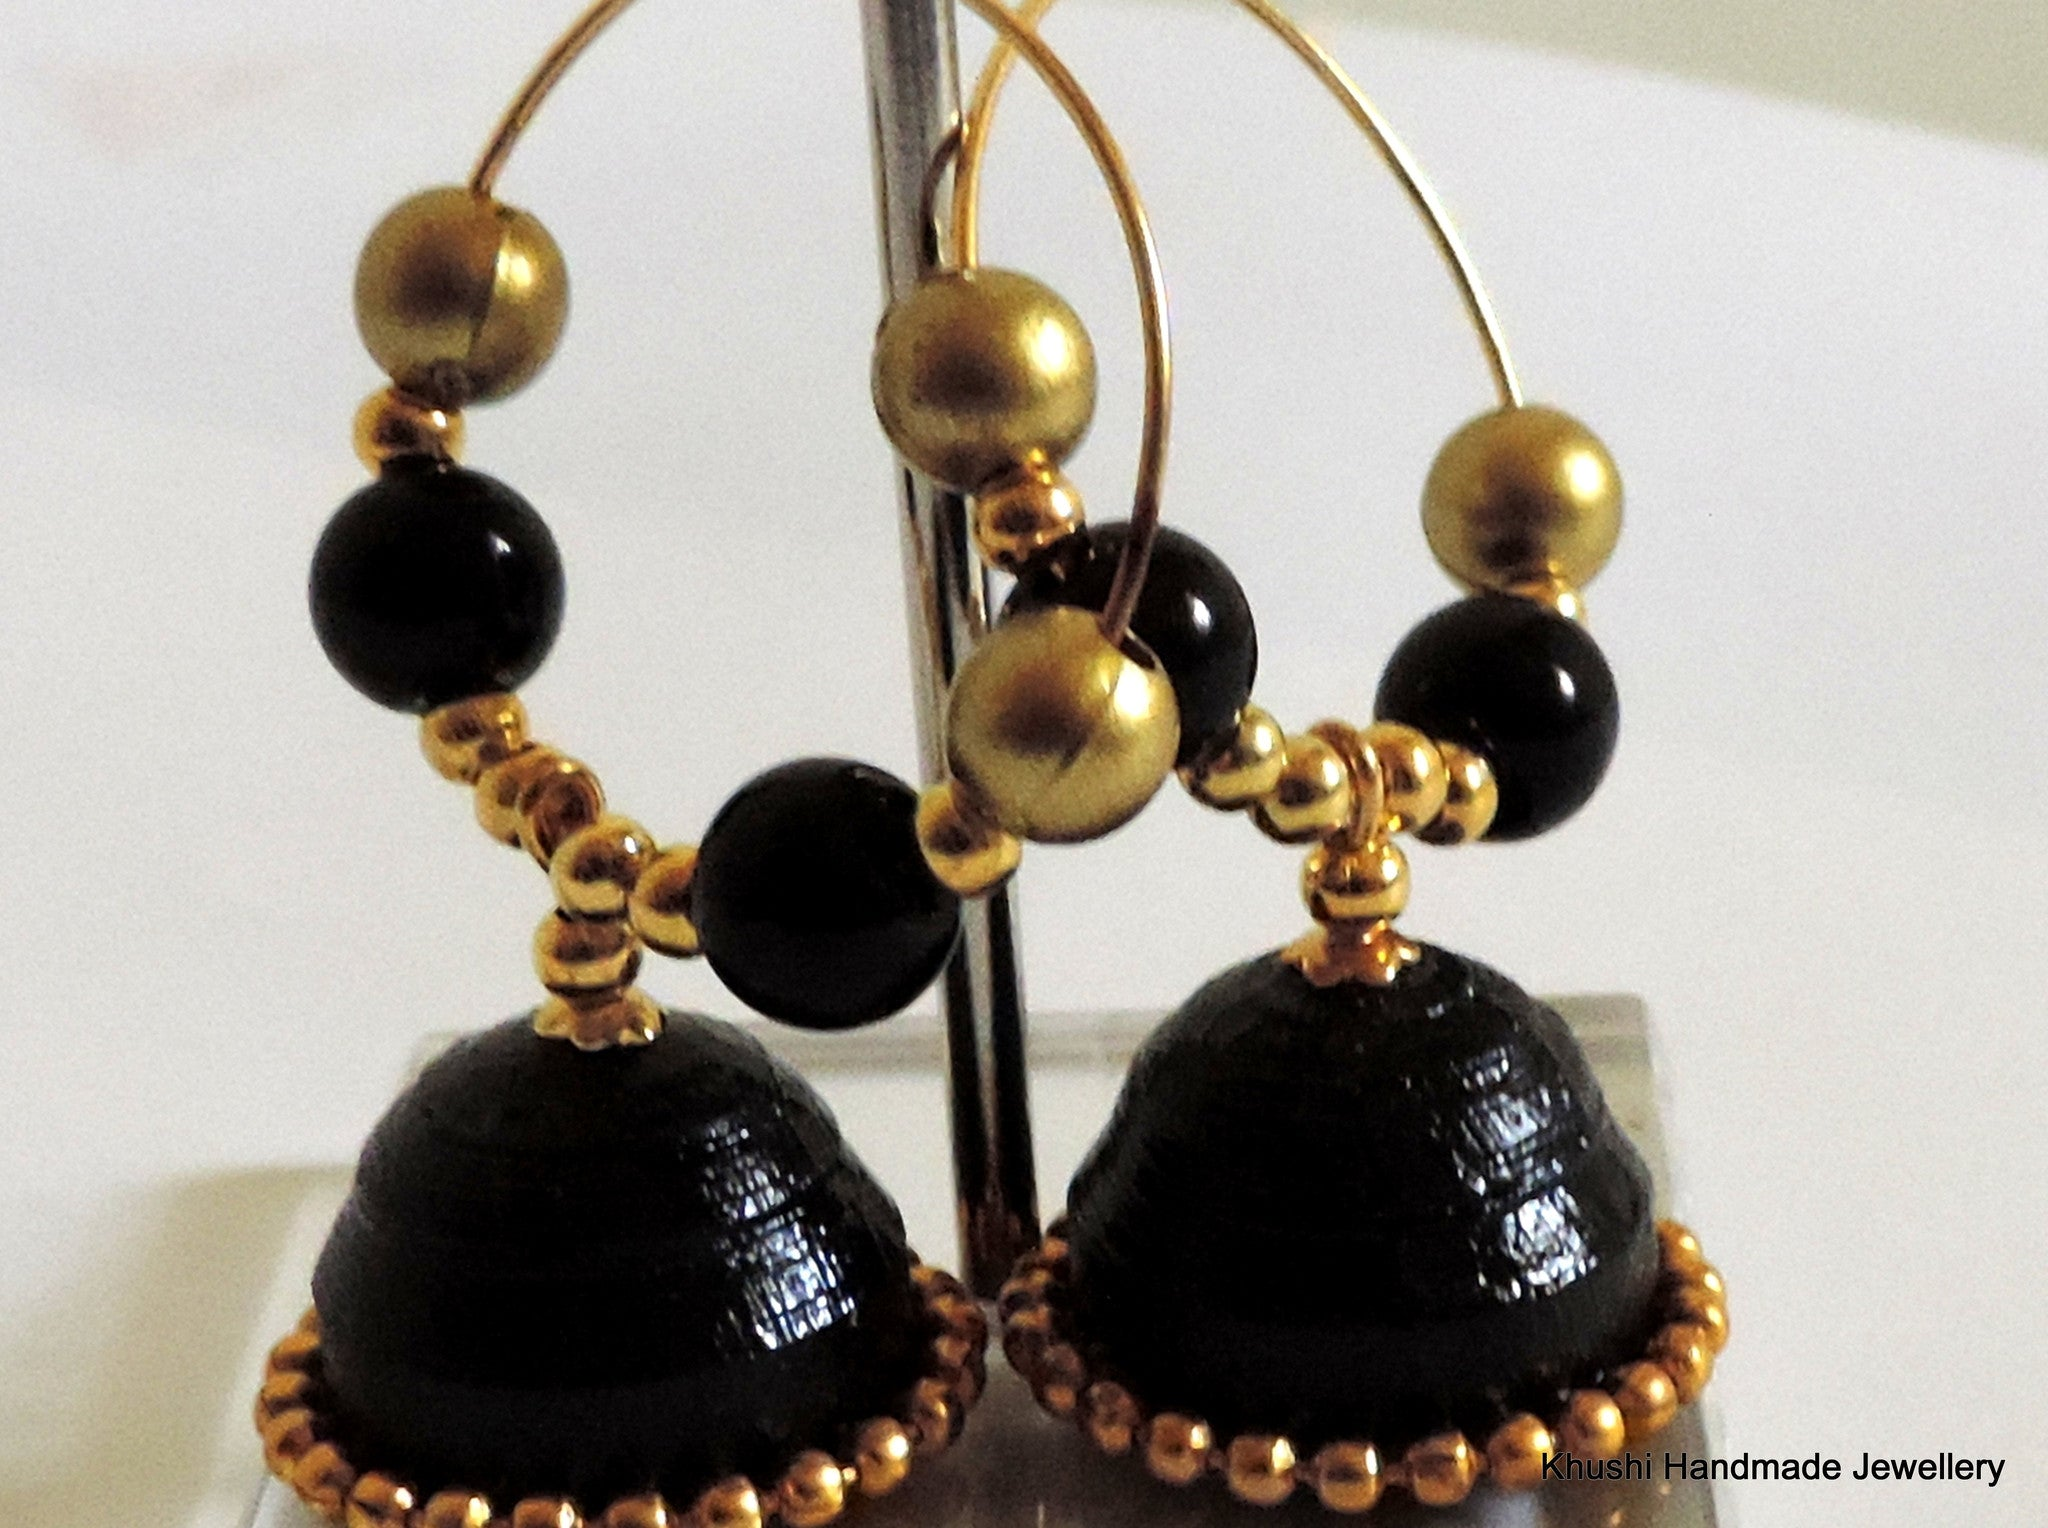 Jhumkas in black! - Khushi Handmade Jewellery